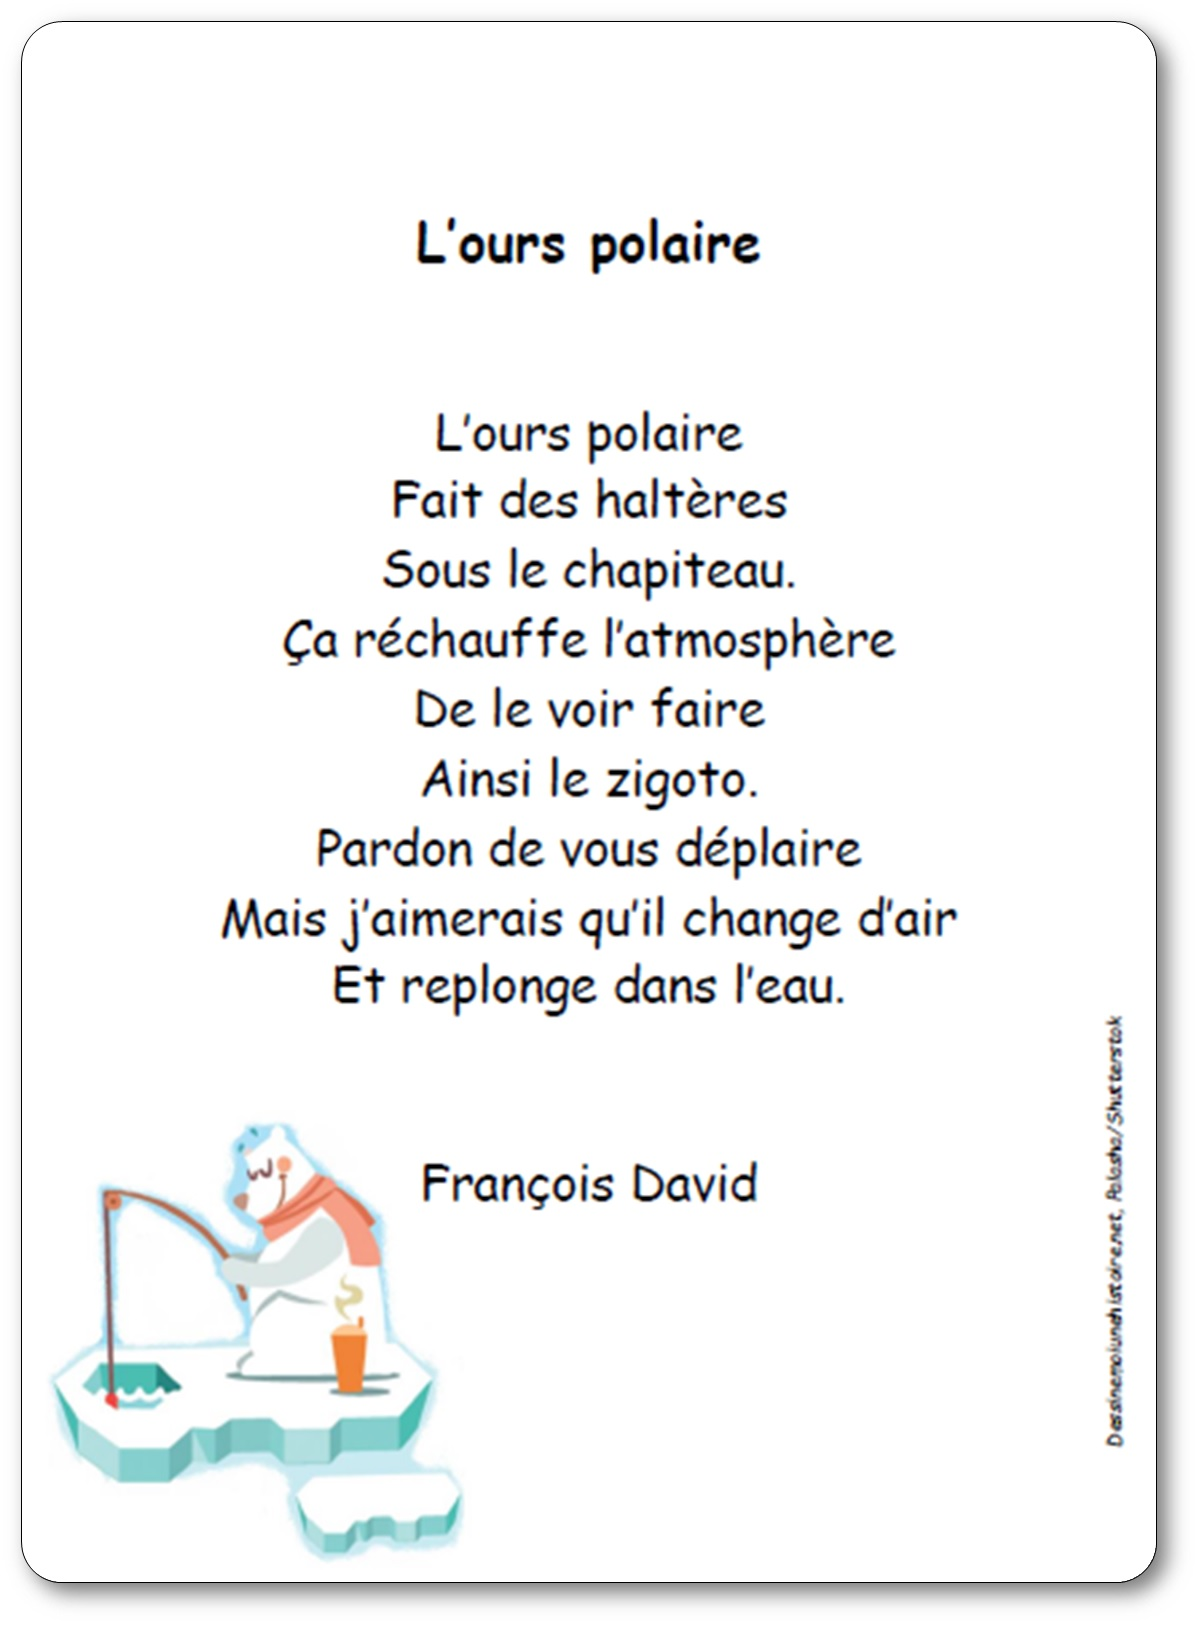 poesie ours